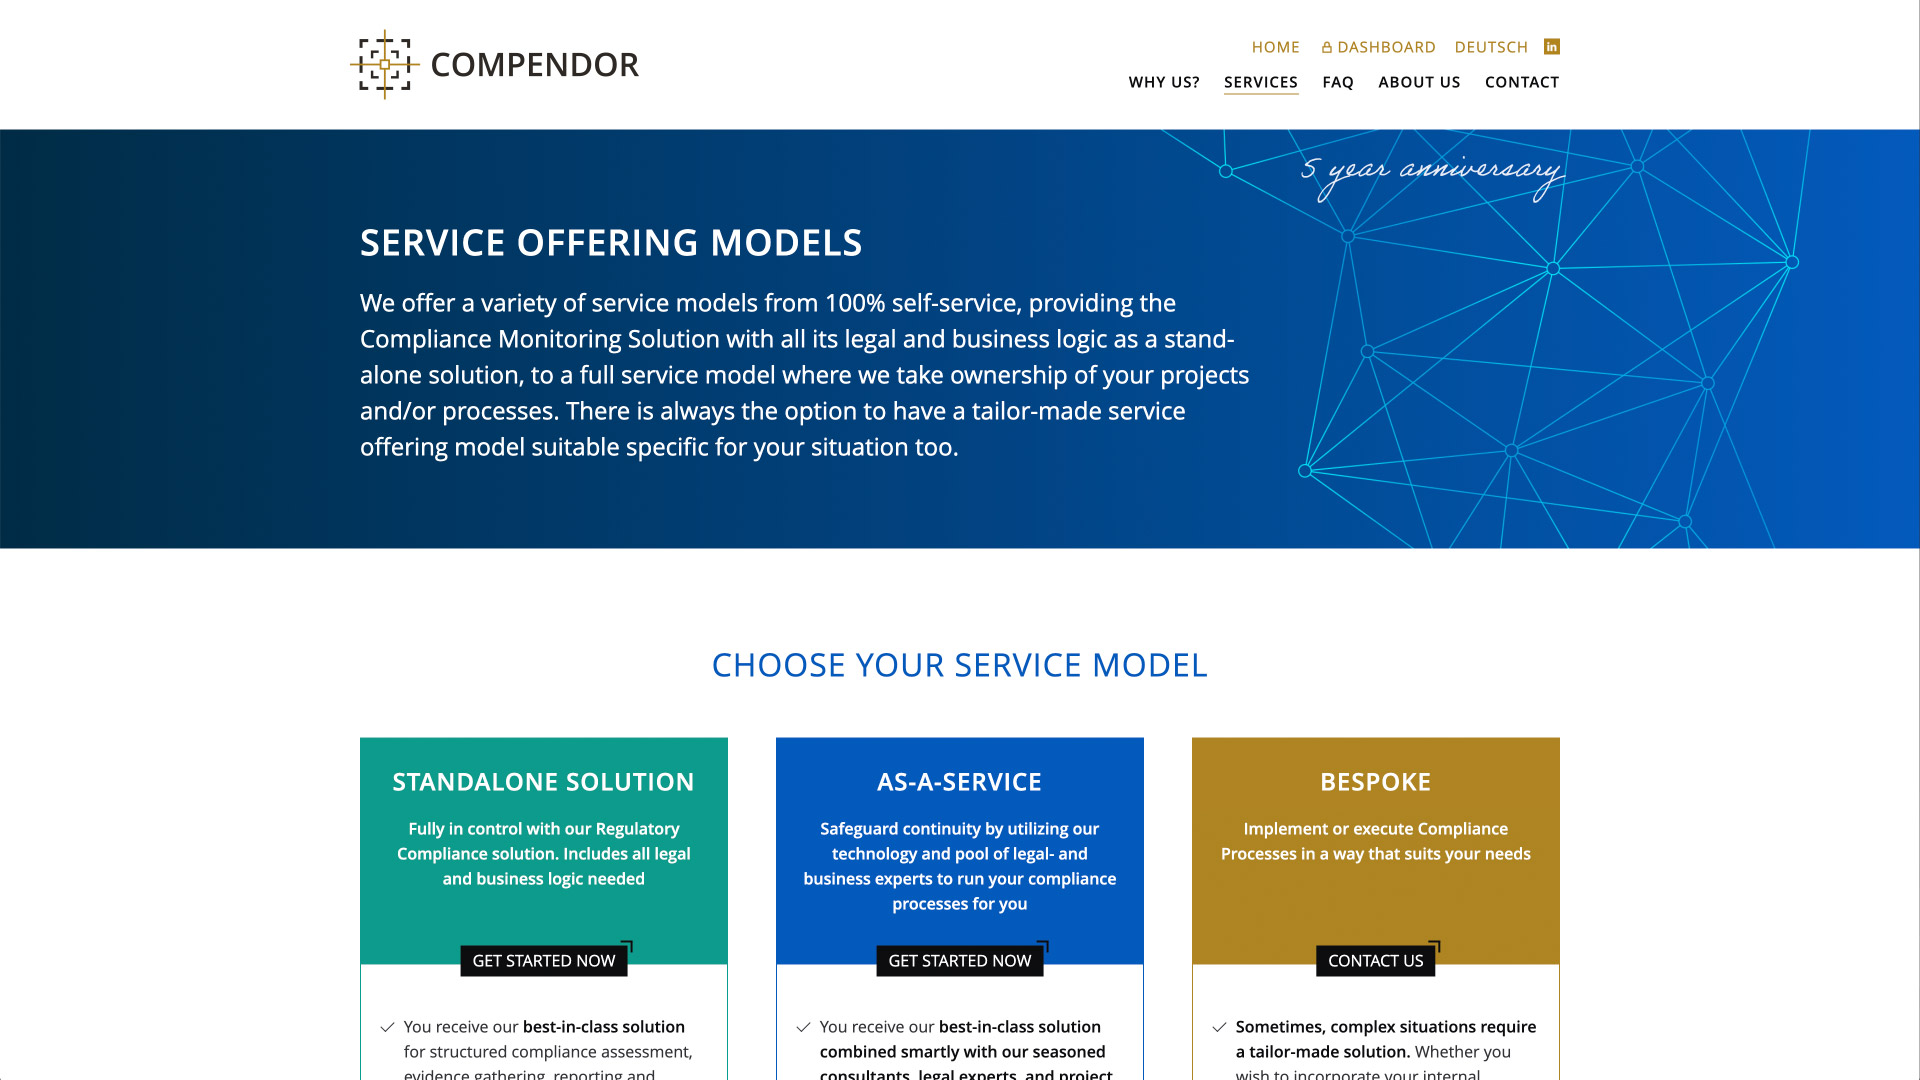 Website for Compendor / 4